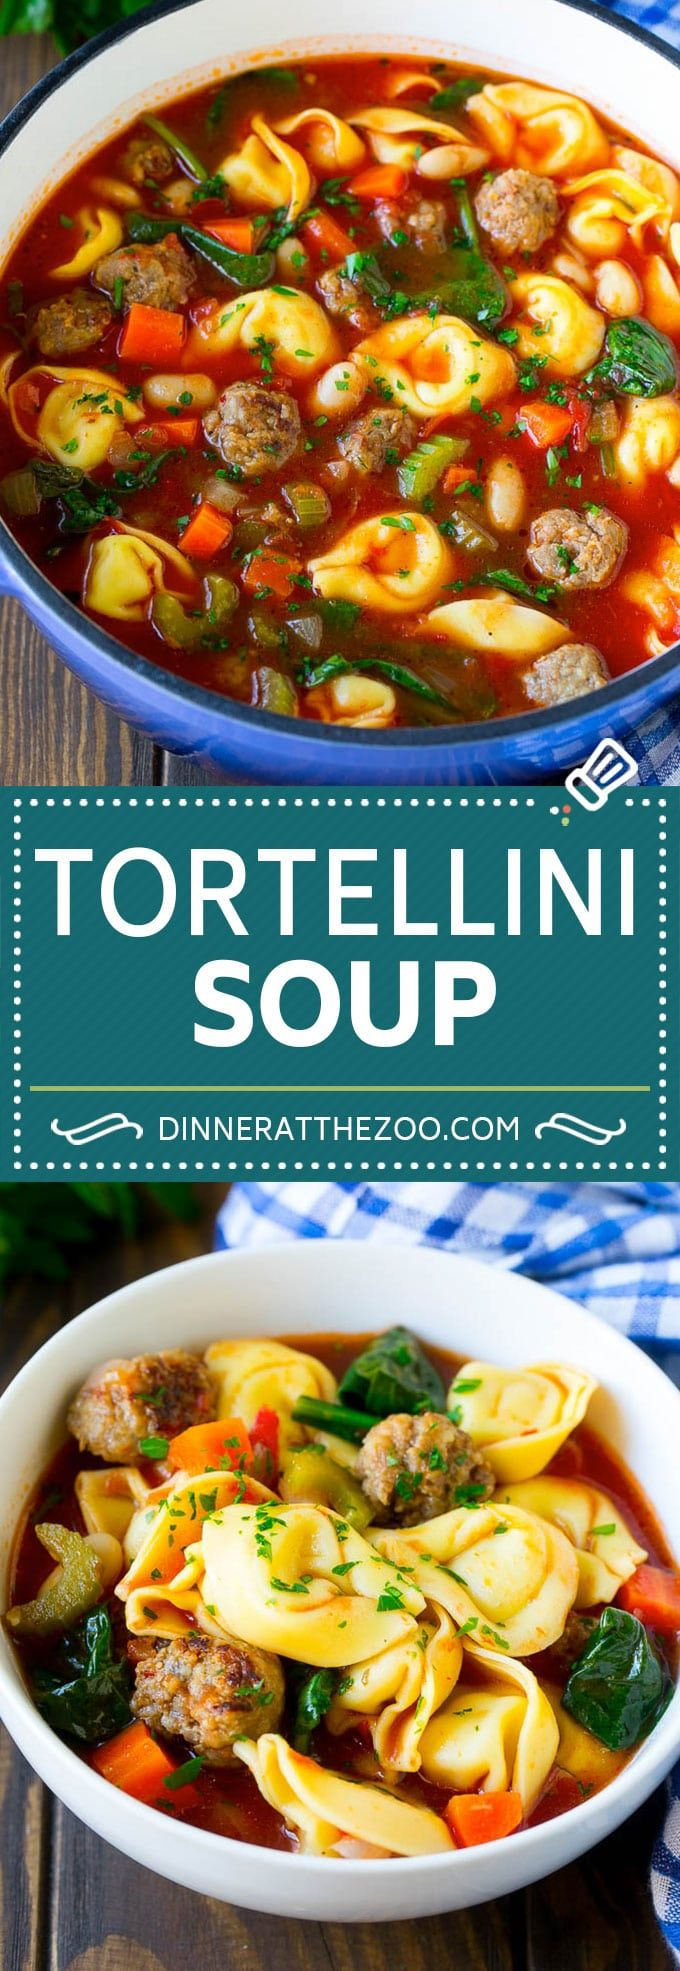 Tortellini Soup with Sausage - Dinner at the Zoo